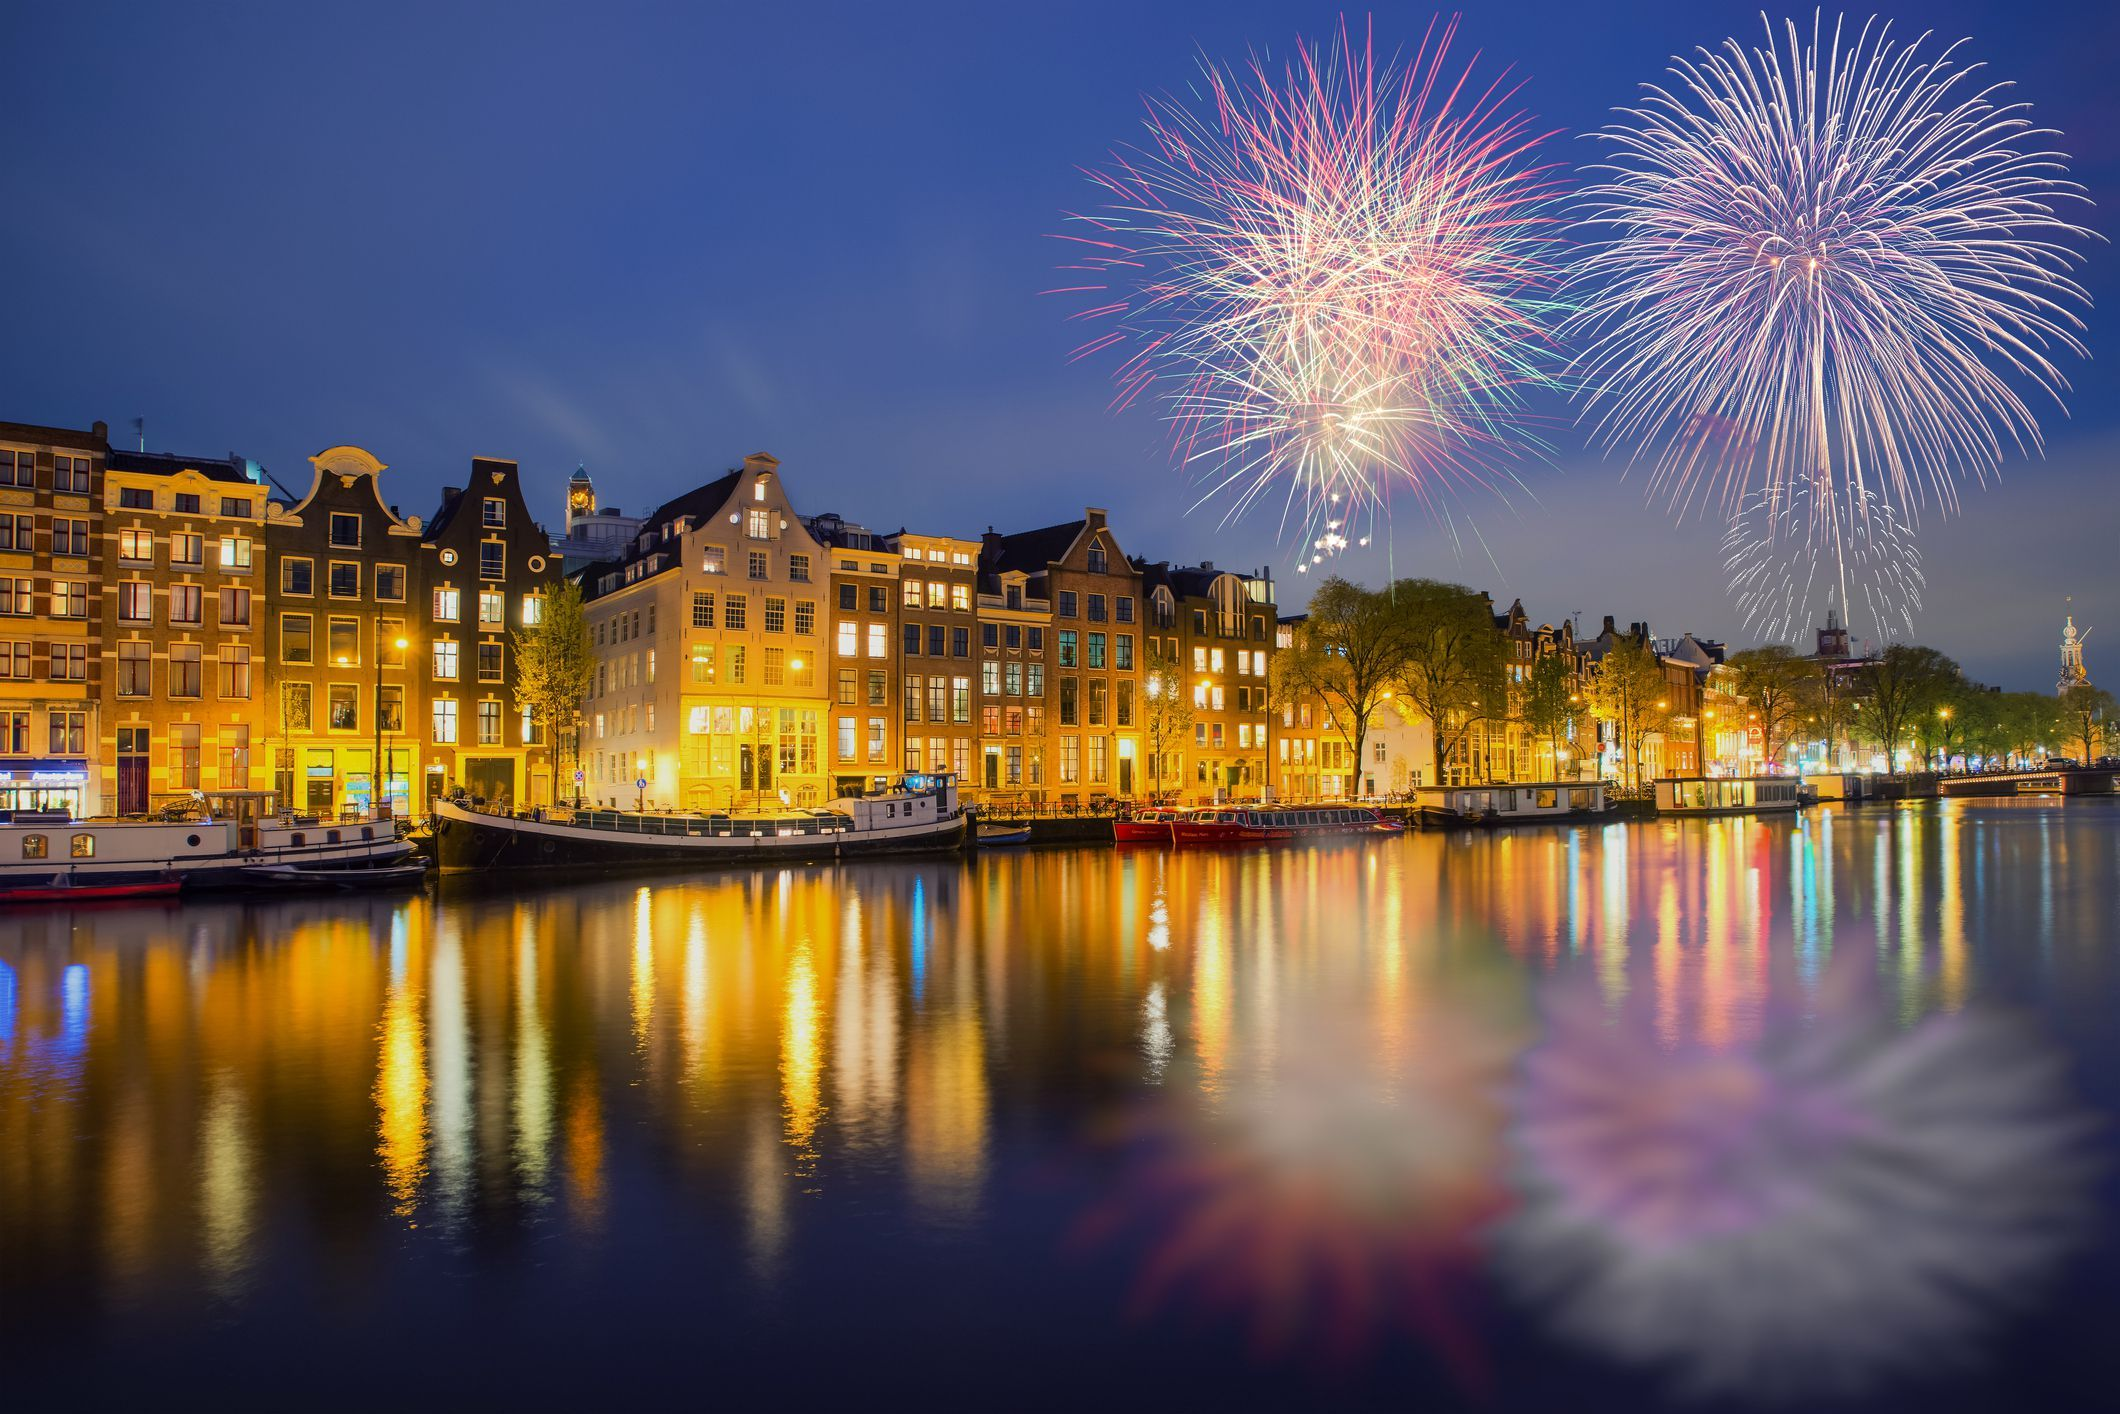 Tips For Celebrating New Year S Eve In Amsterdam Amsterdam New Years Eve Amsterdam New Year Christmas In Europe